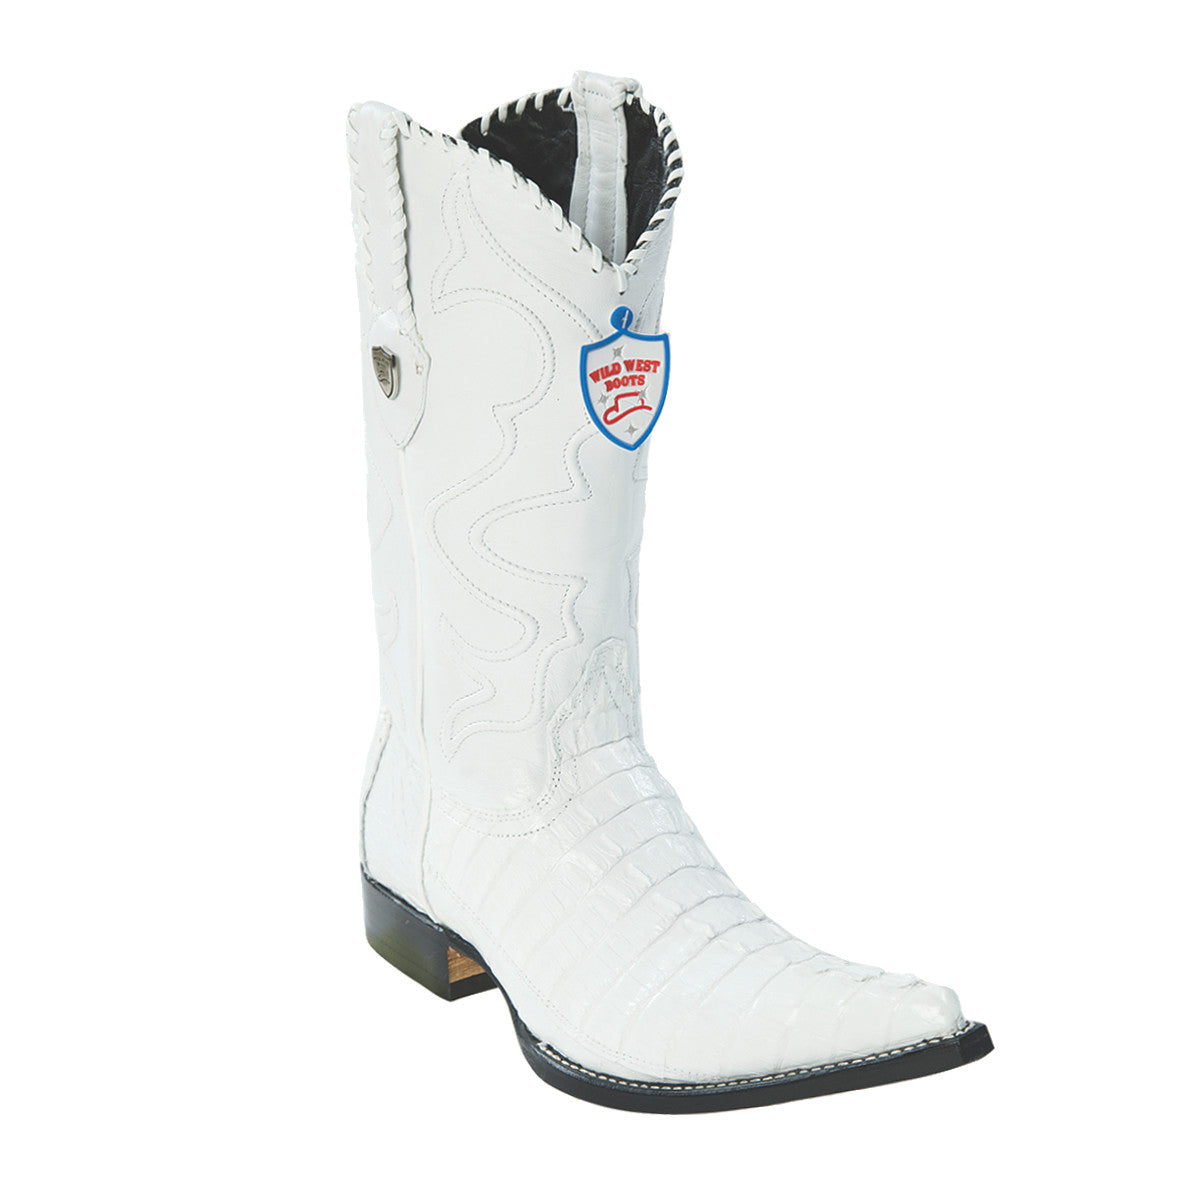 Wild West Boots H95 3x Toe Caiman Tail - White